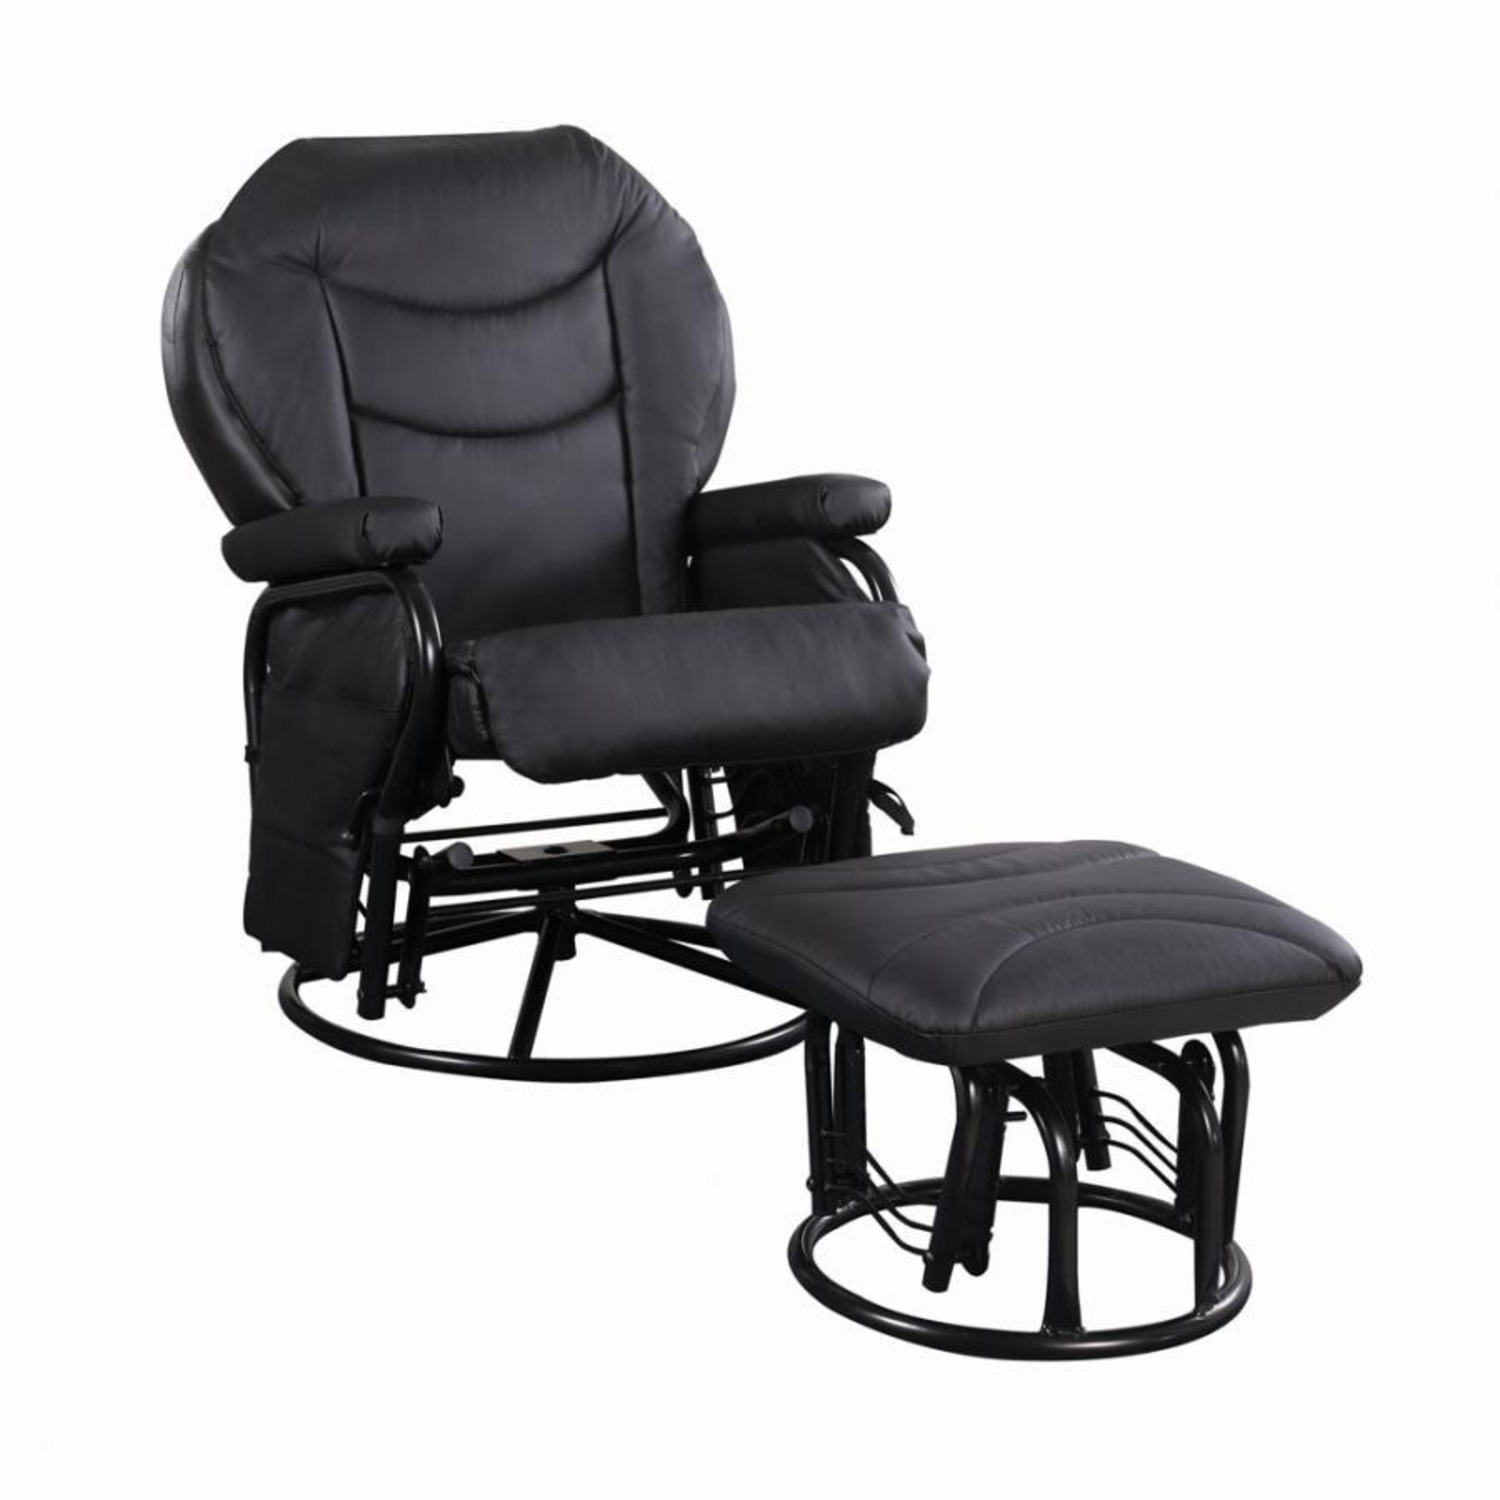 Glider W/ Ottoman In Black Leatherette Upholstery - image-0